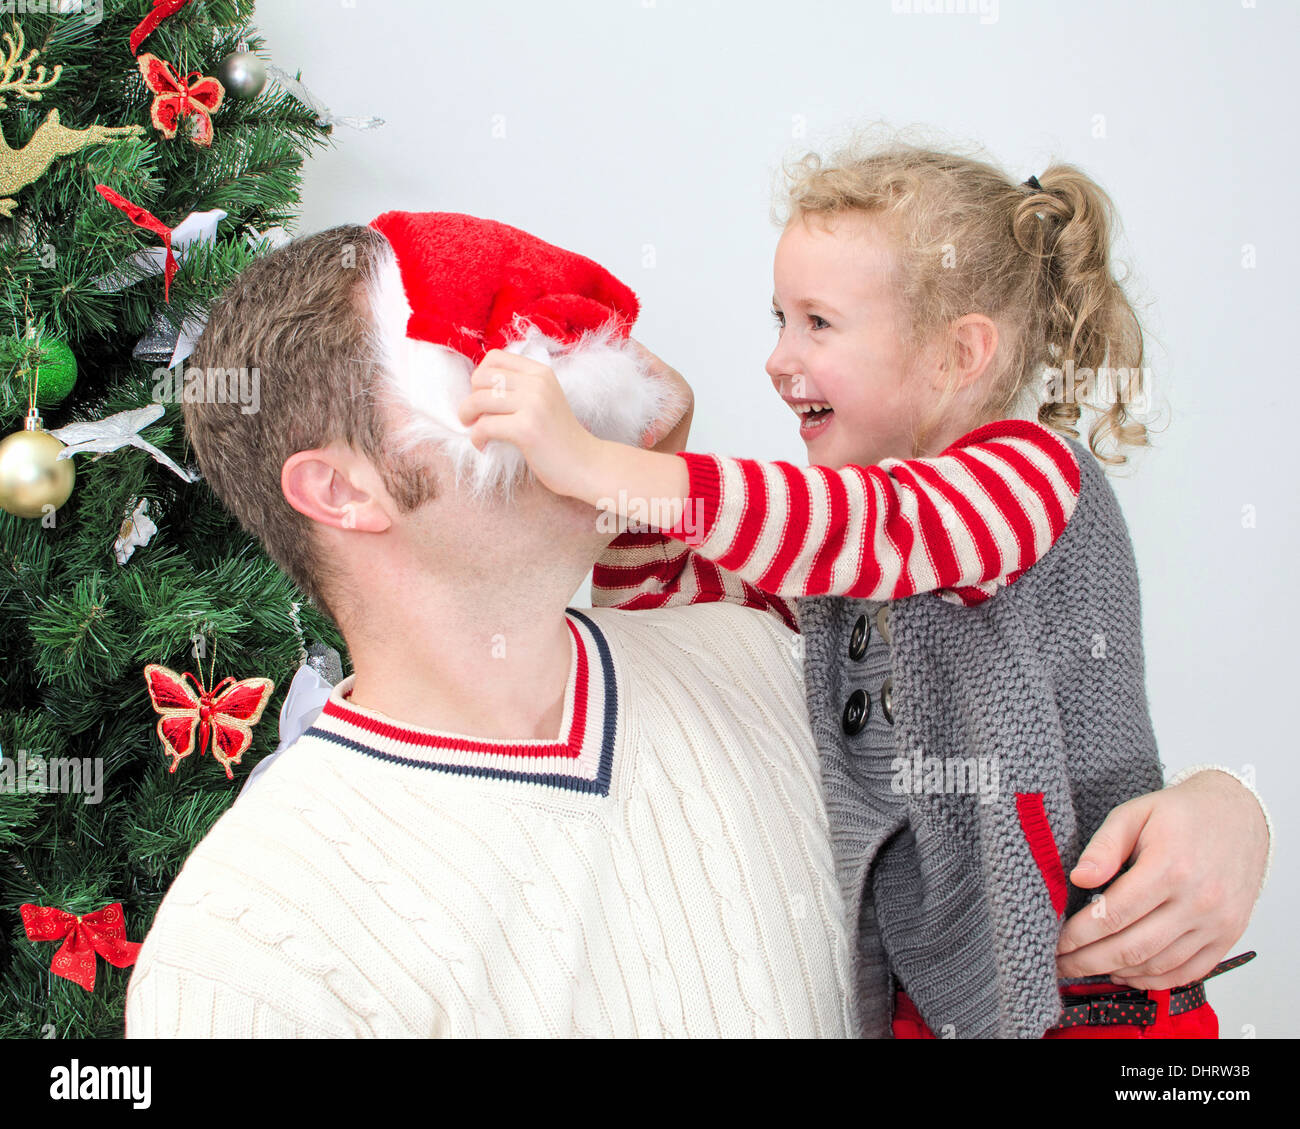 77a502f1 Father and daughter having fun at the christmas. Girl trying to put on  Santa's hat on father.